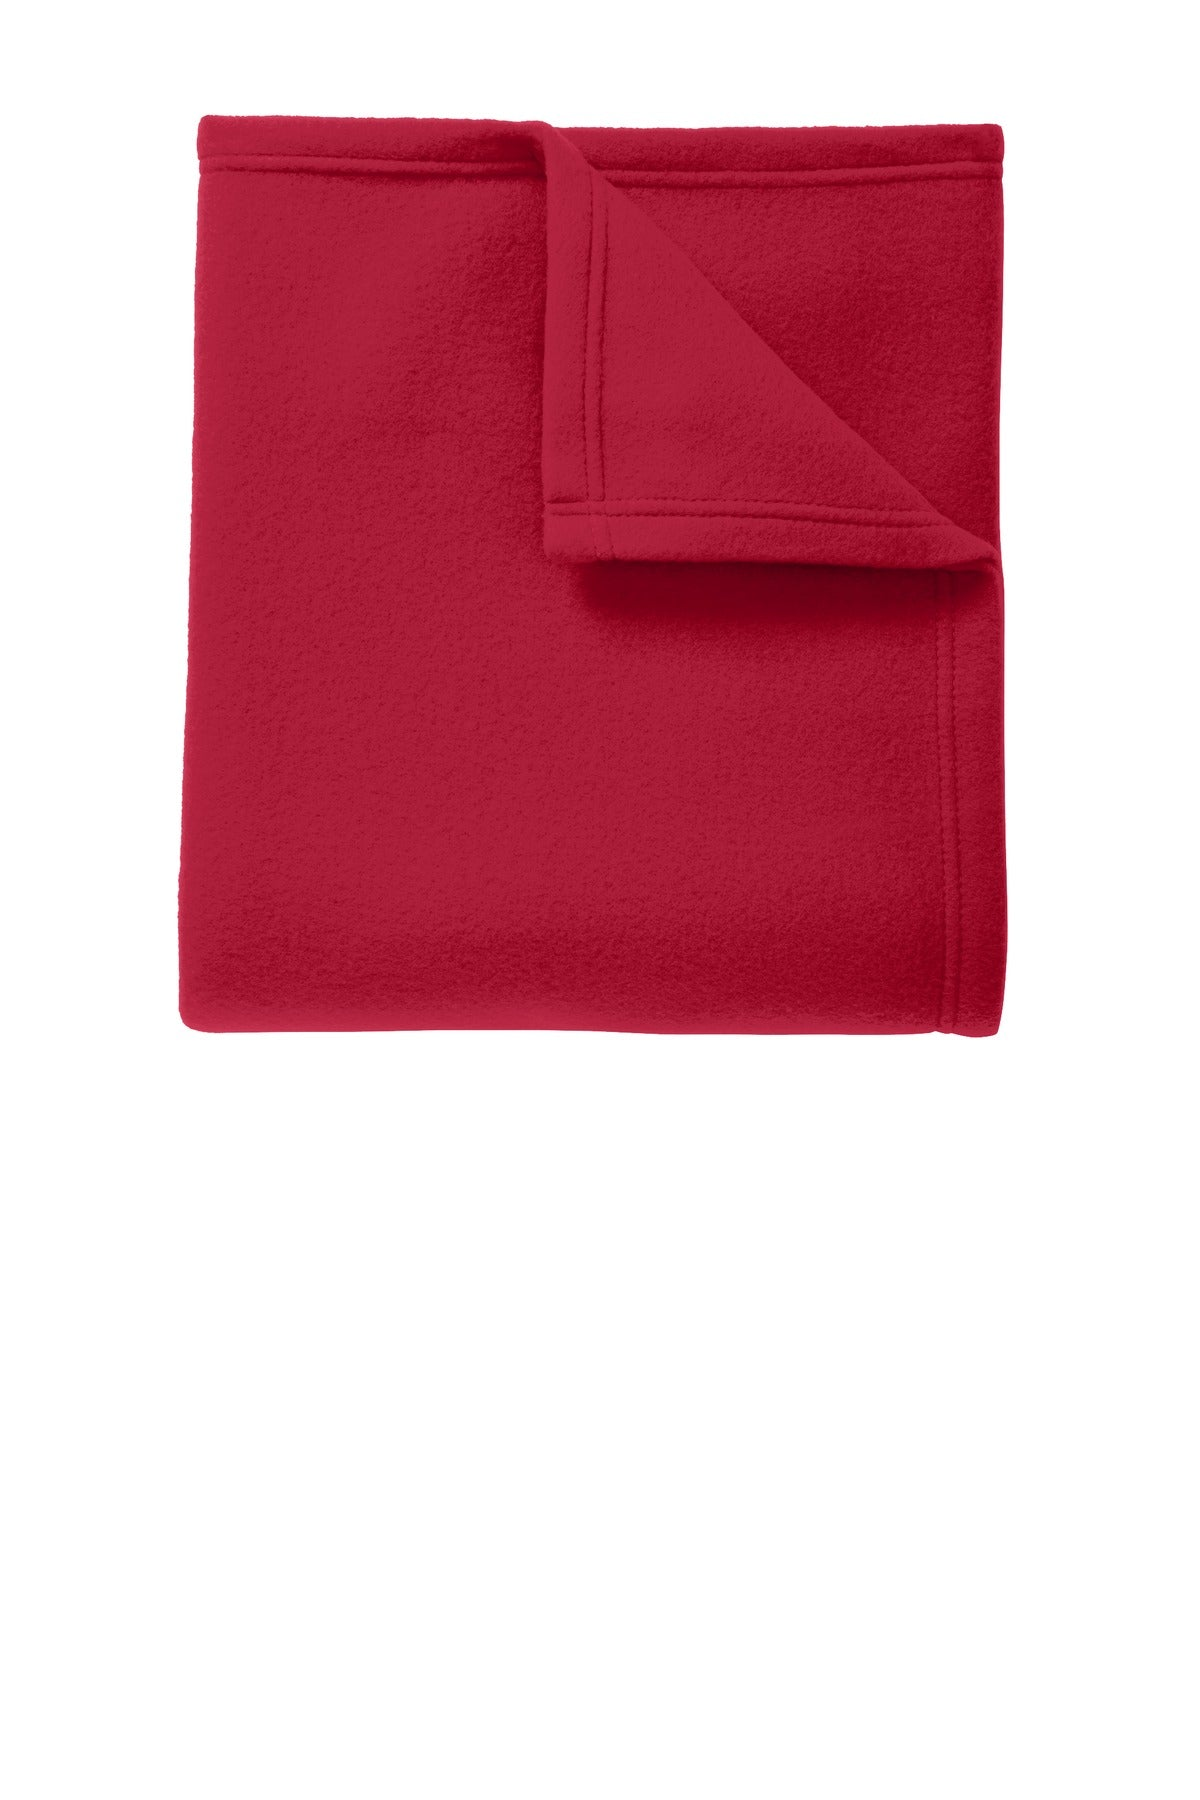 Rich Red Port Authority Core Fleece Blanket.